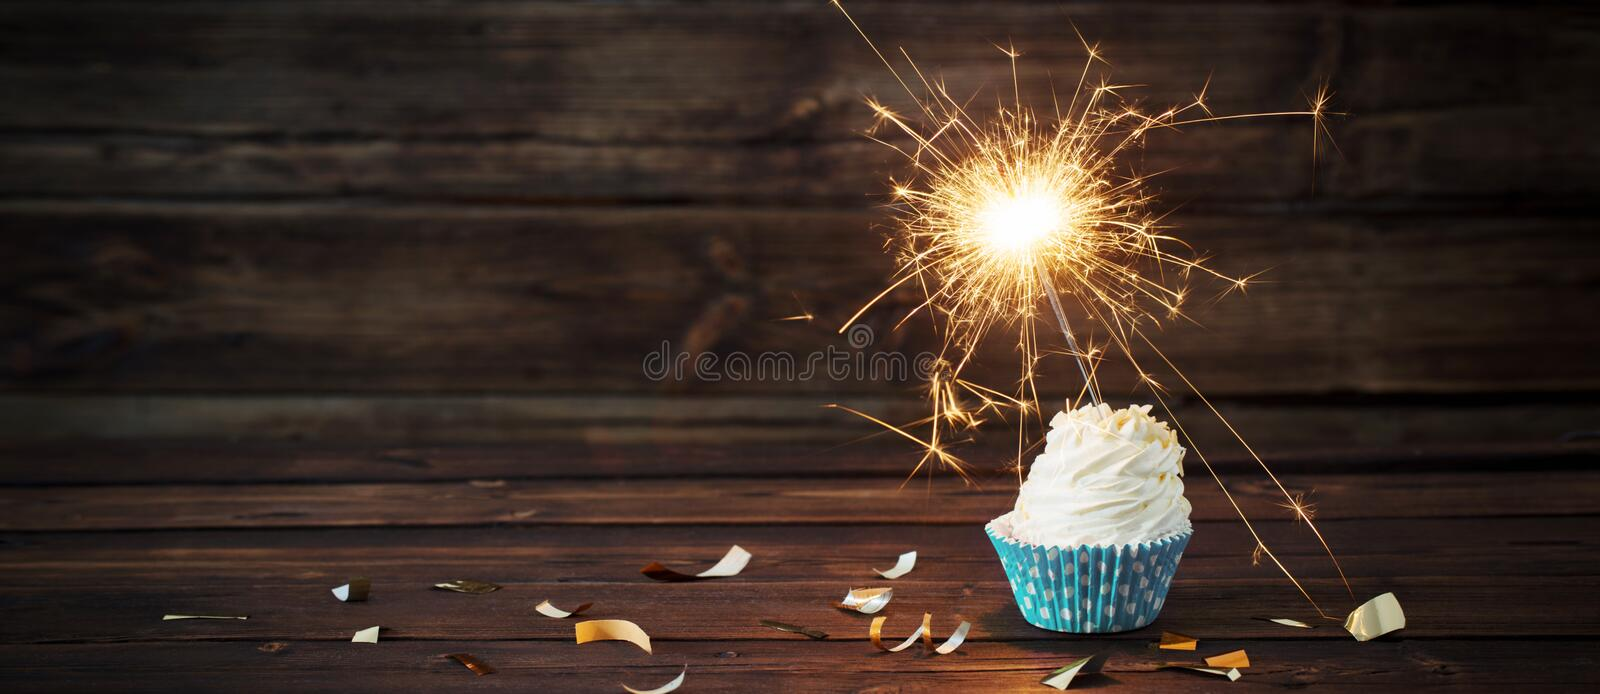 Tremendous Birthday Cake Sparkler Stock Photos Download 1 581 Royalty Free Funny Birthday Cards Online Alyptdamsfinfo